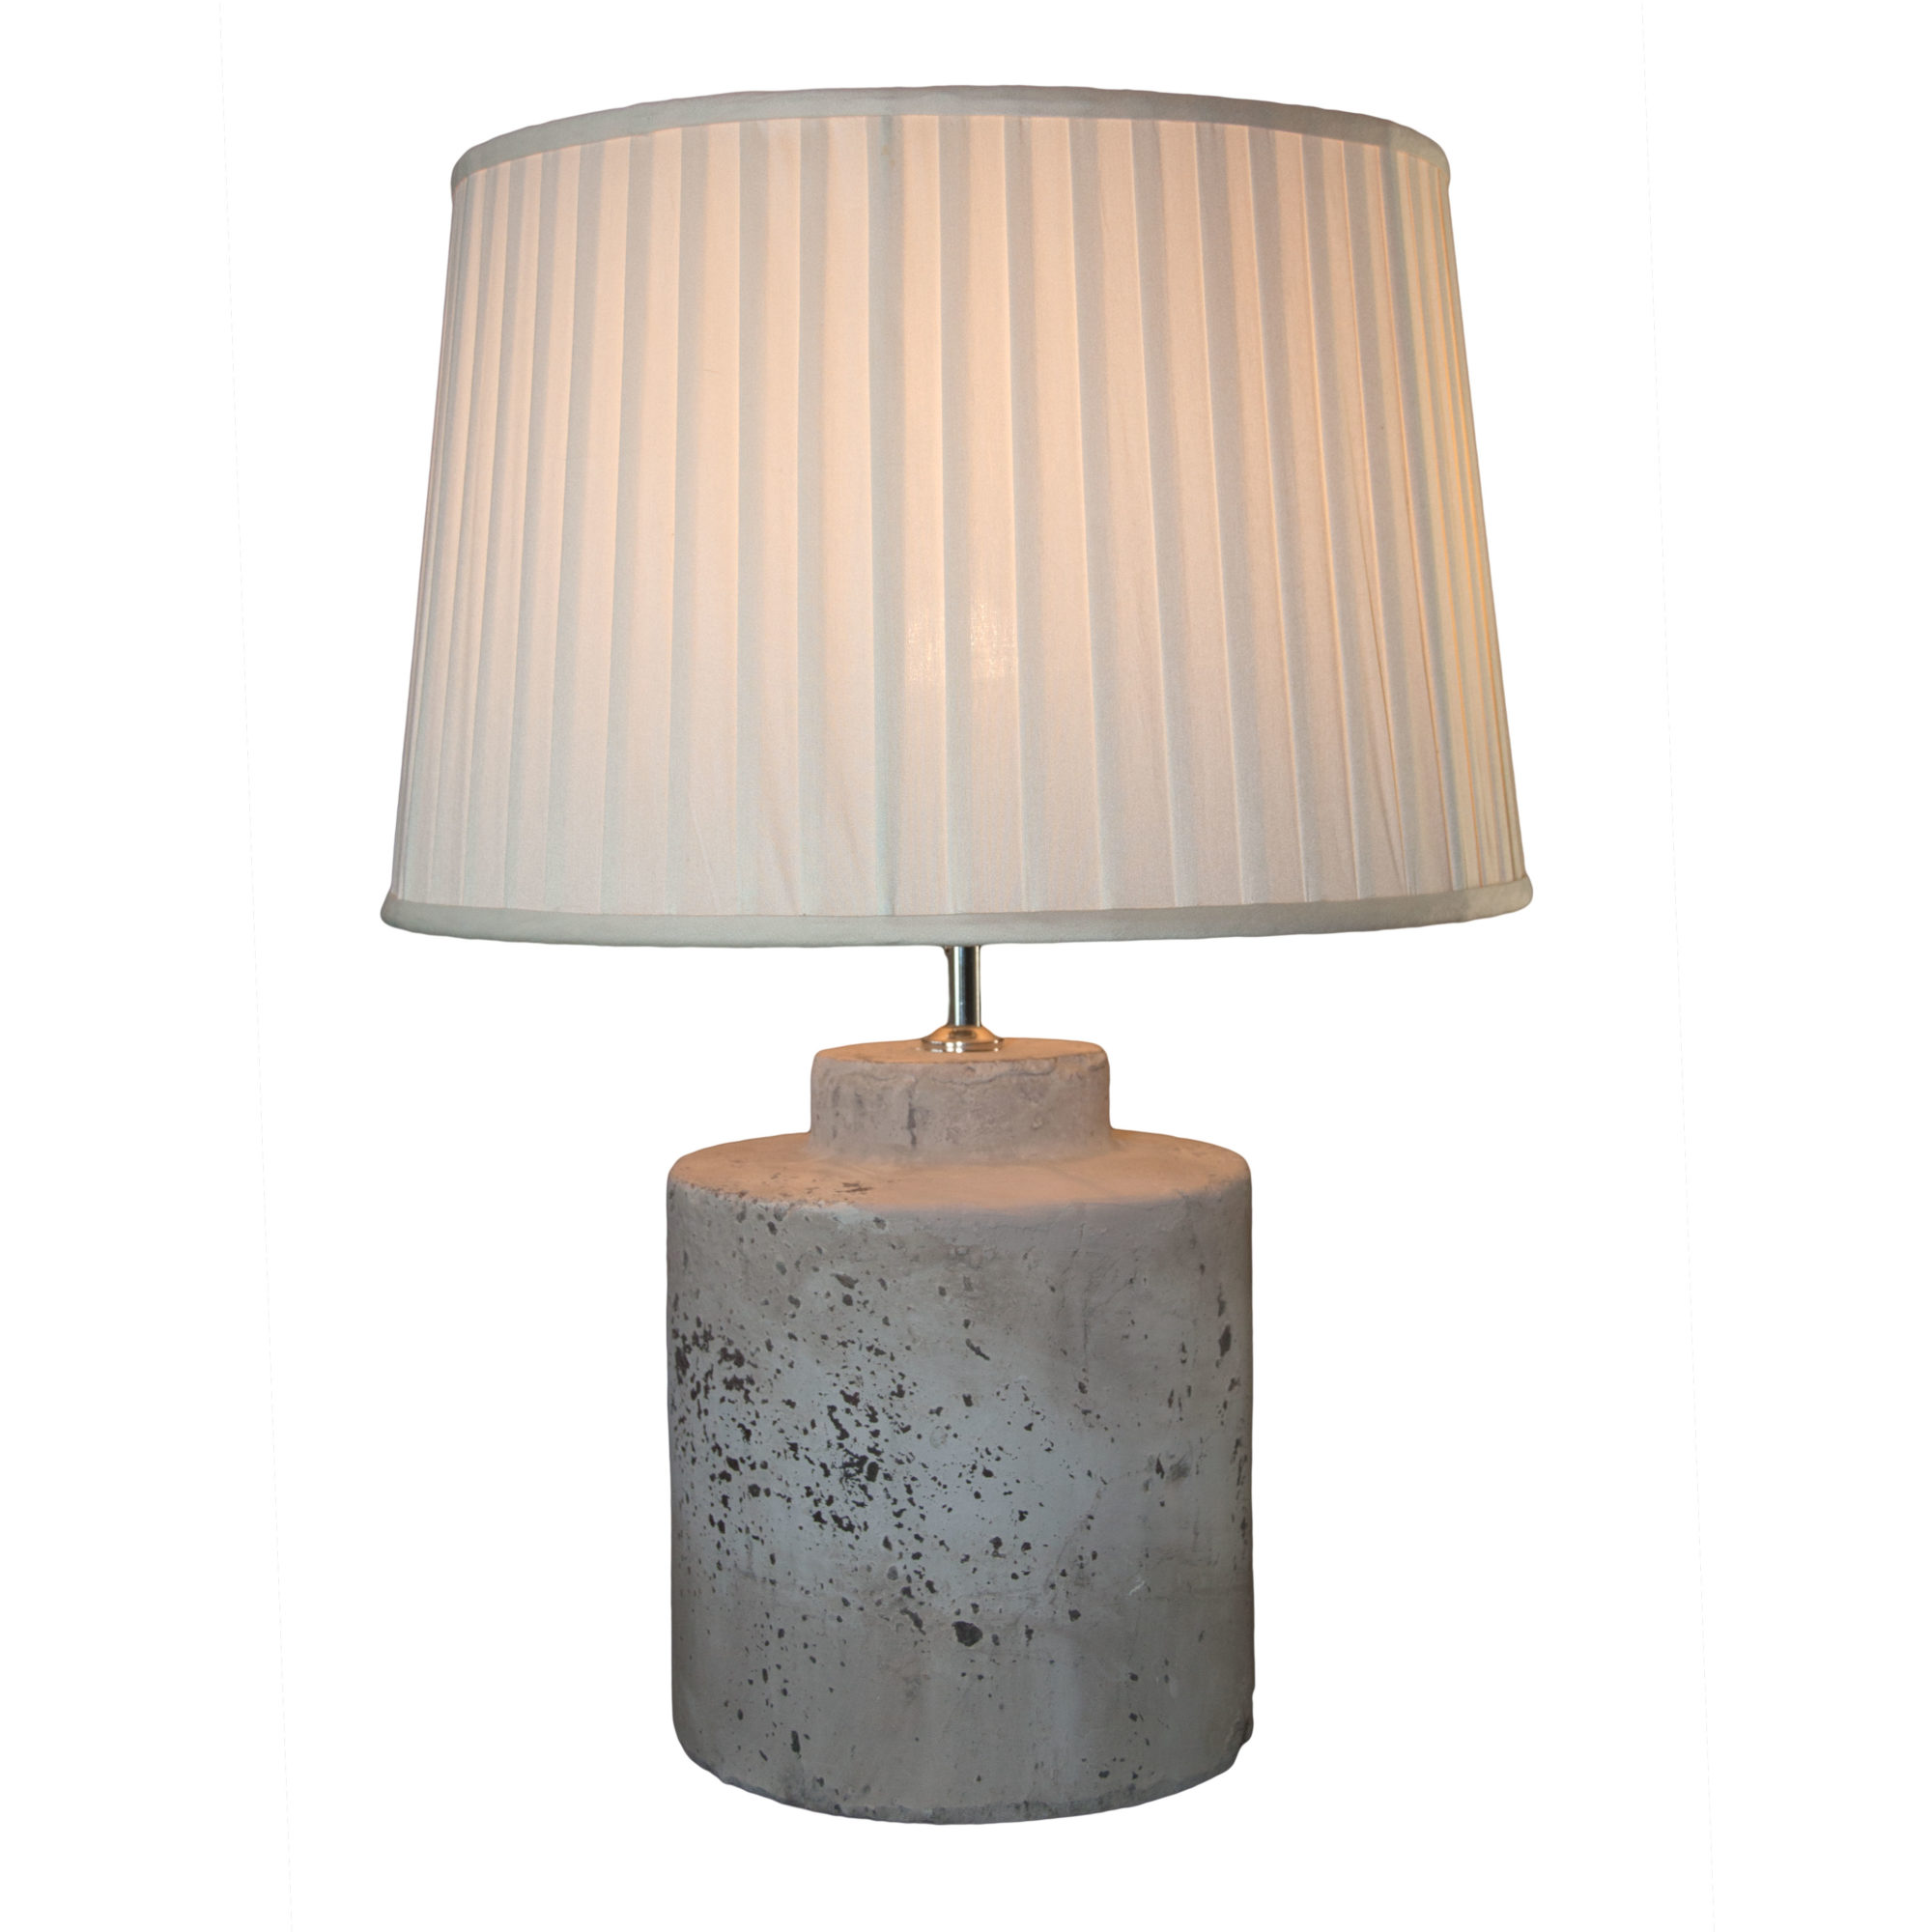 Stone effect drum shaped lamp base baker rhodes for Drum shaped lamp shades